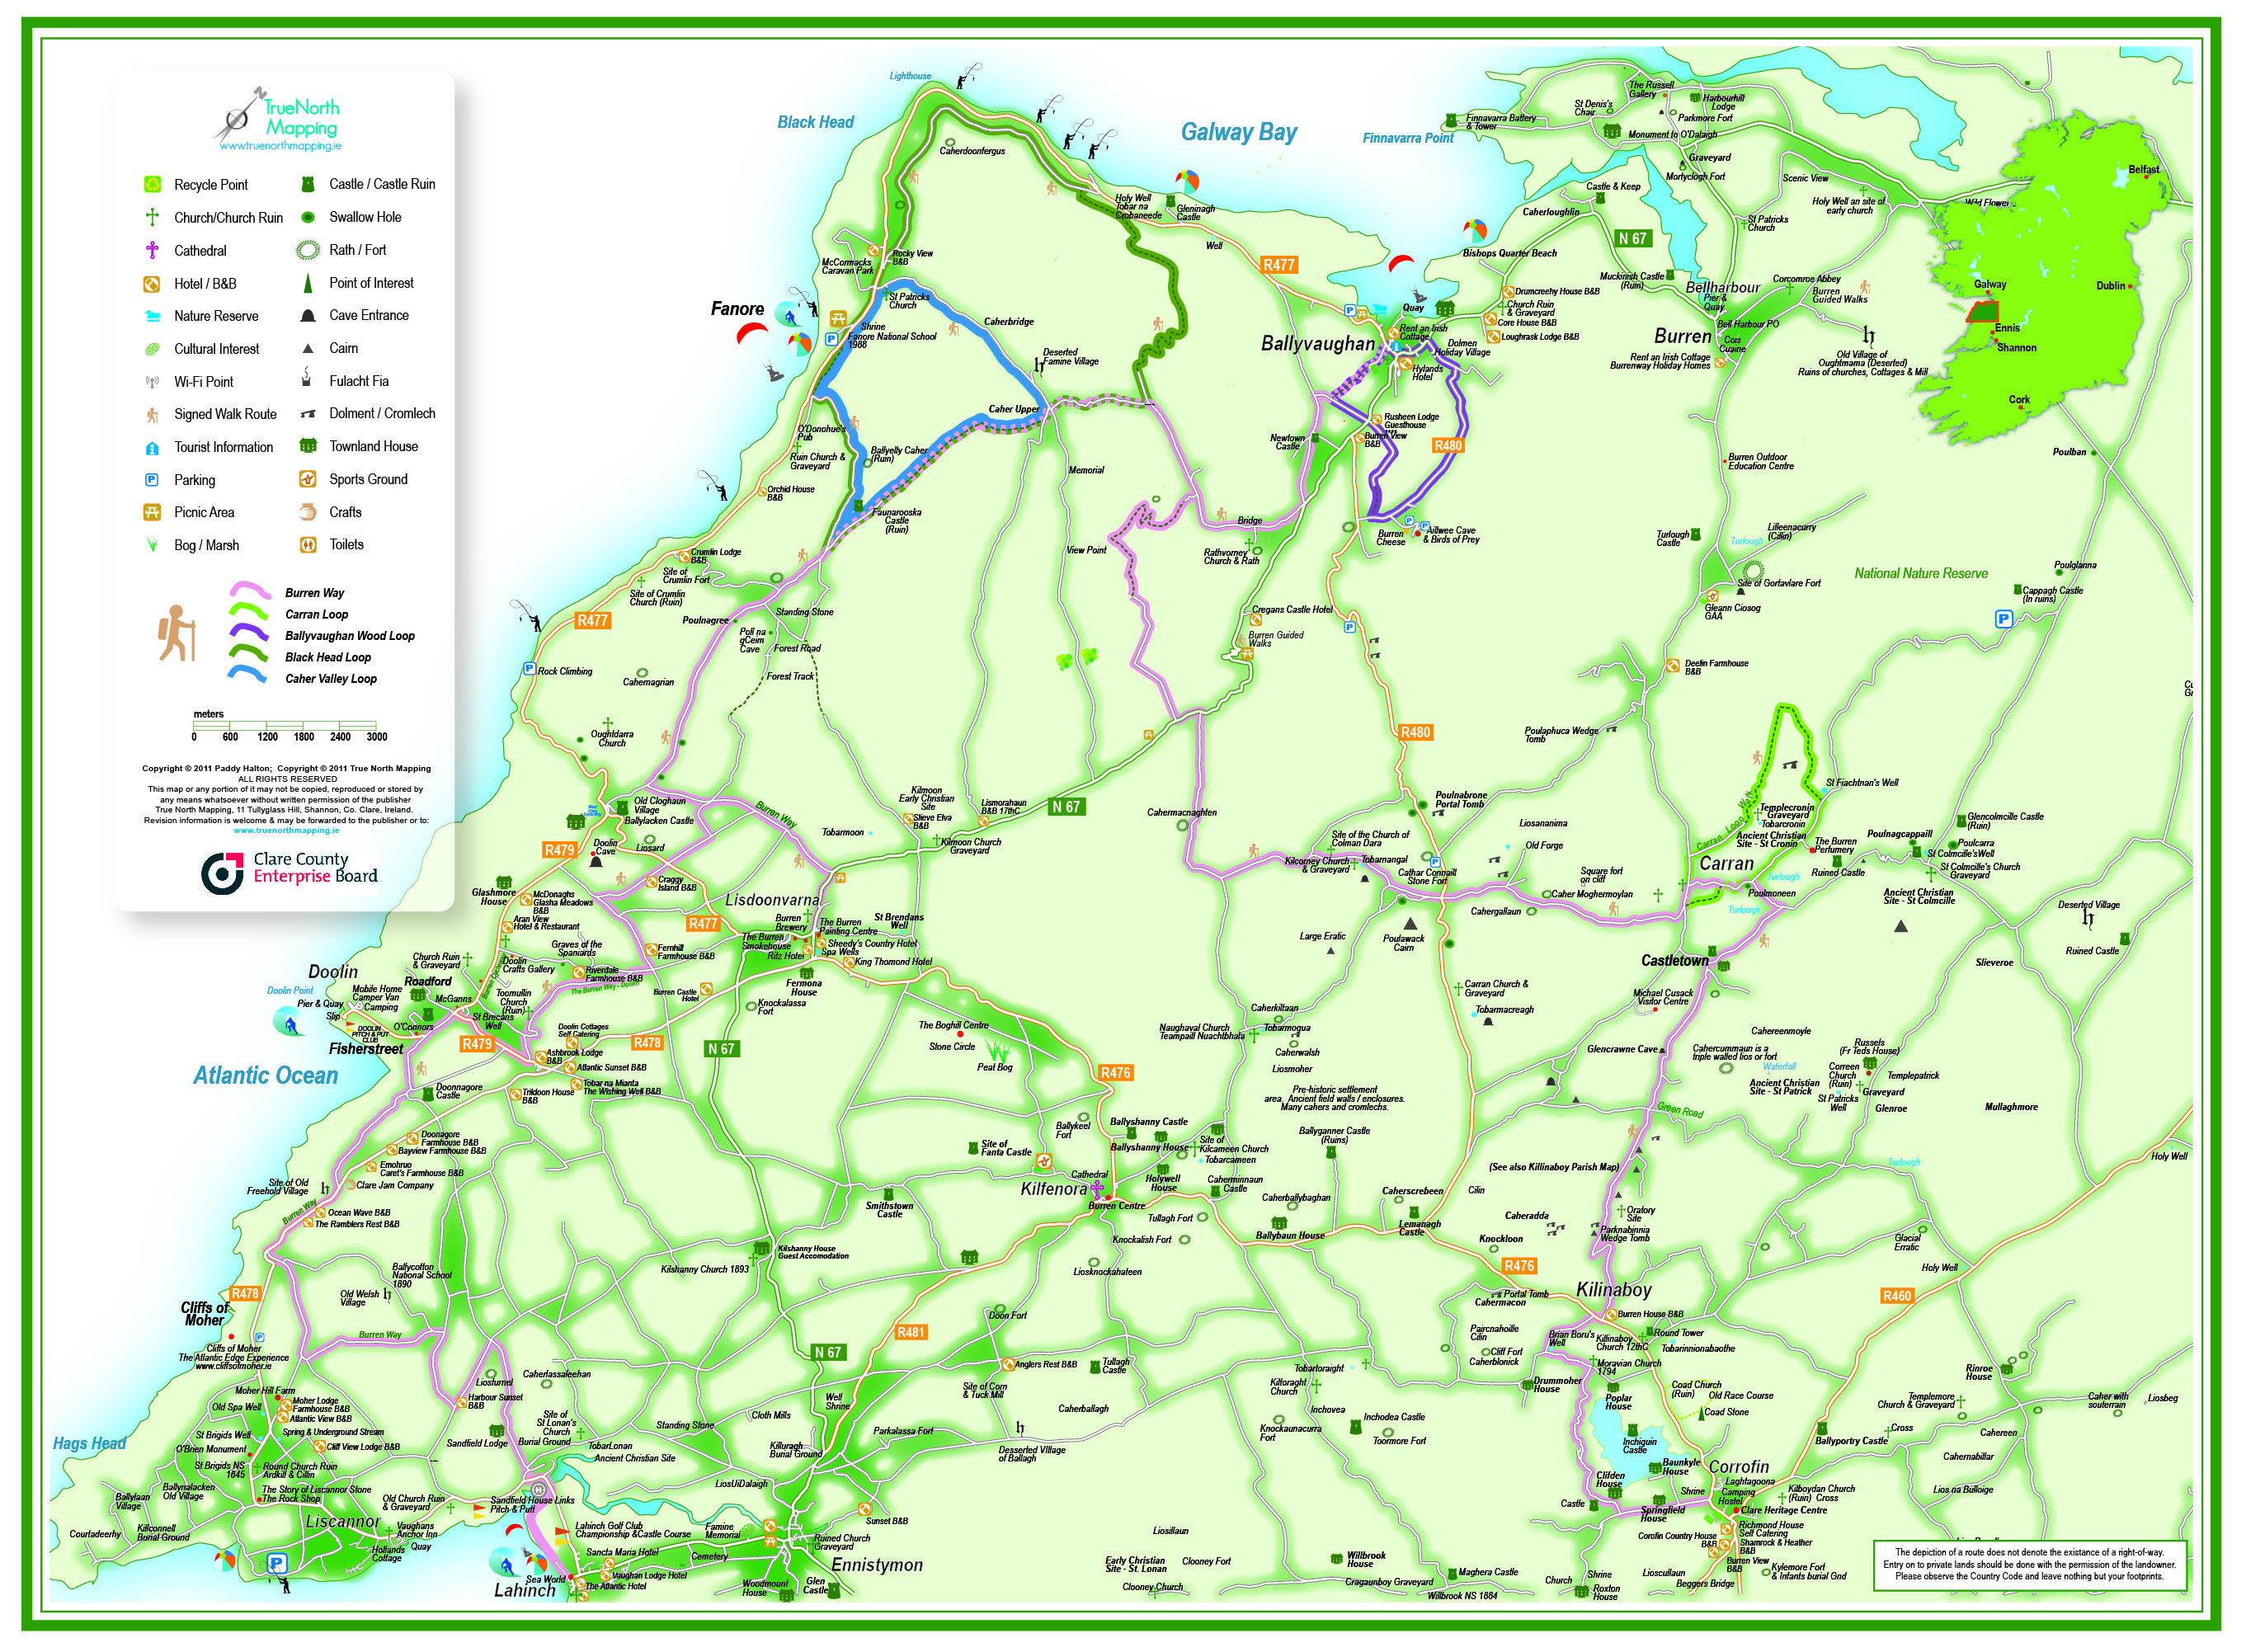 Map Of The Burren Ireland.County Clare Map Of Ireland In And Around Doolin Cliffs Of